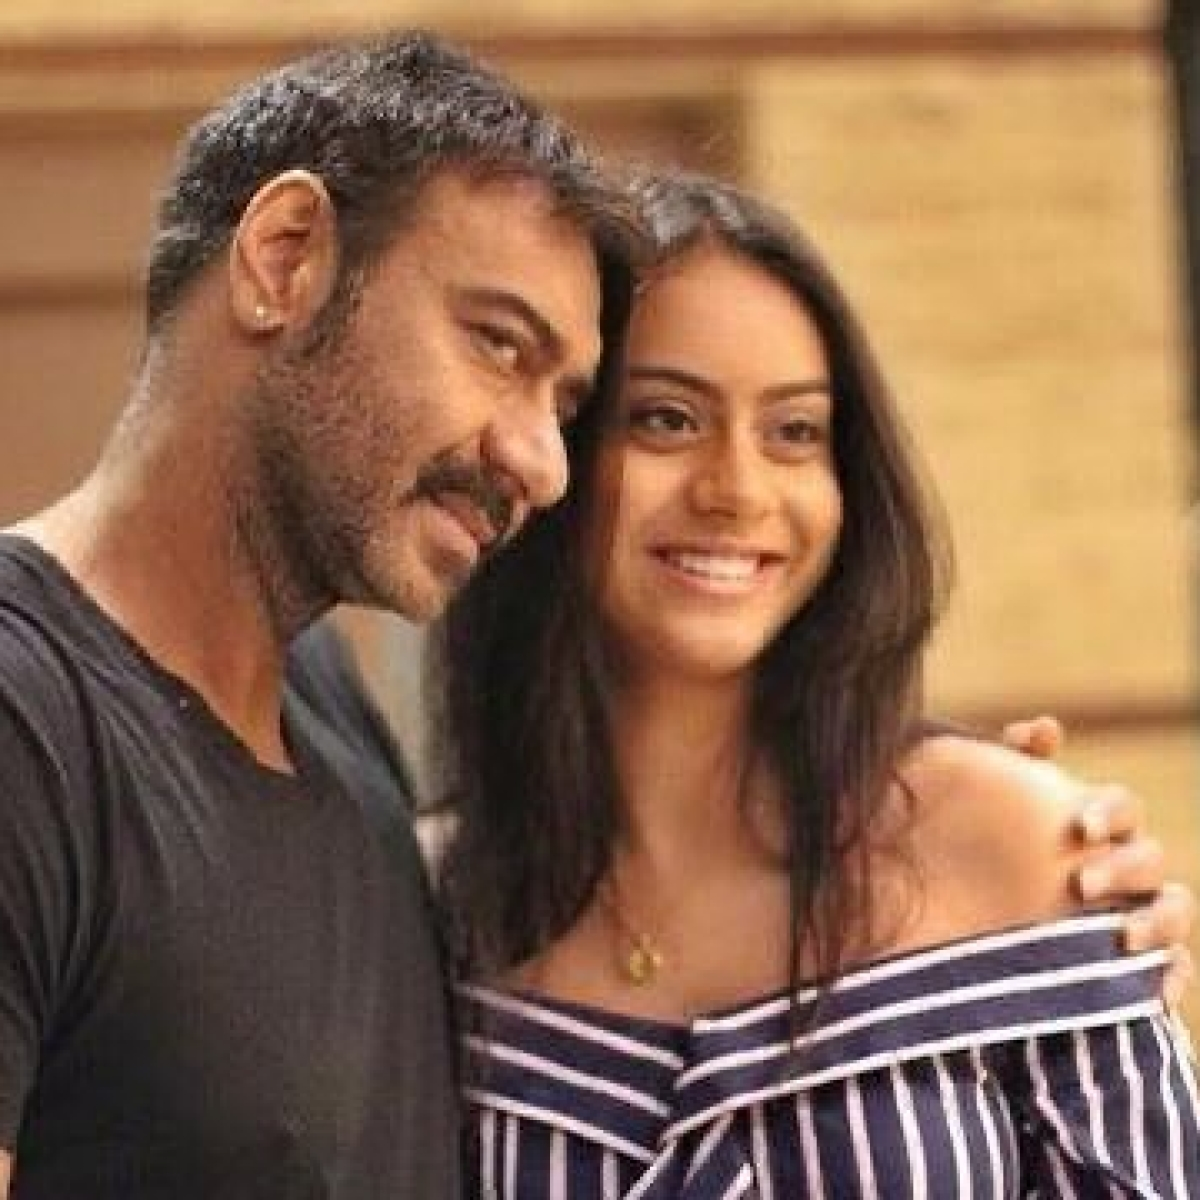 Amid 'stressful times', Ajay Devgn shares an unseen photo with daughter Nysa on her 18th birthday